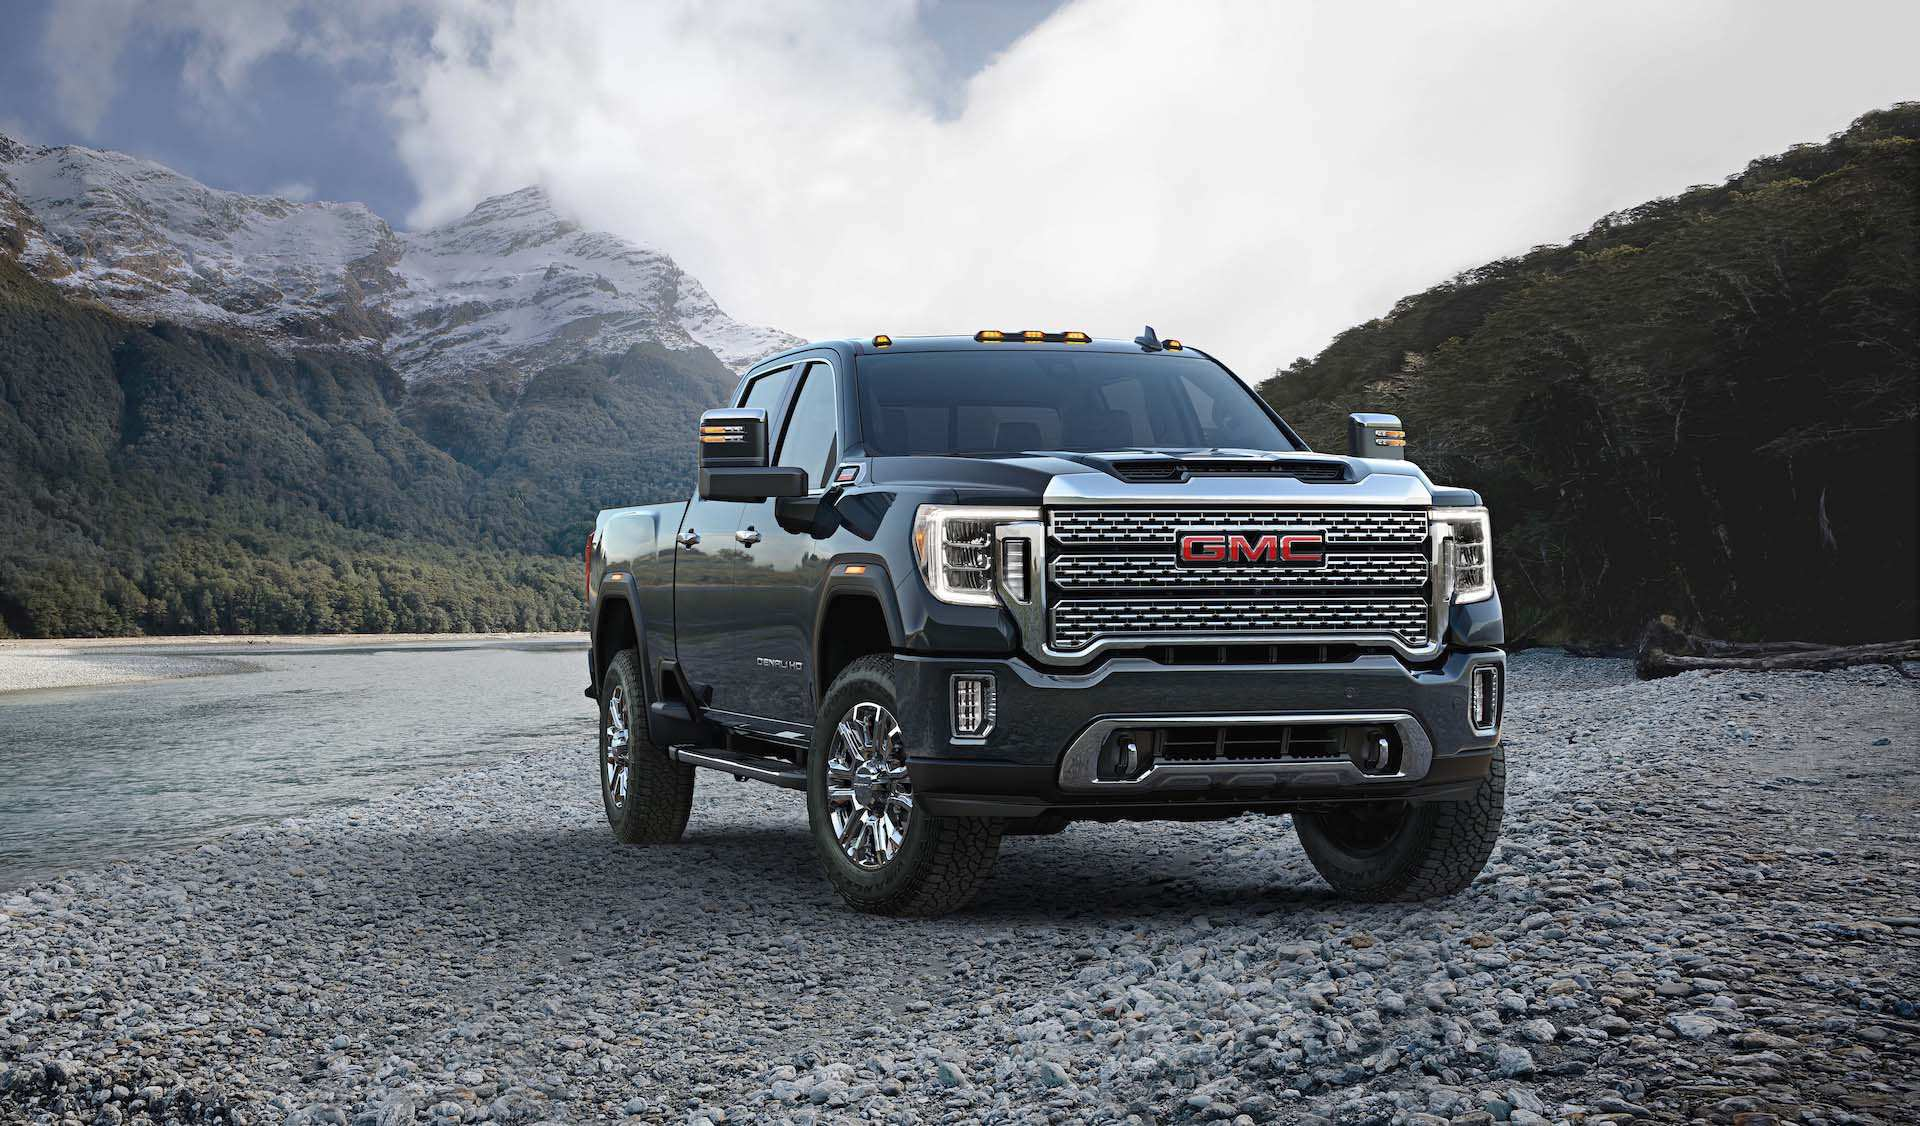 72 All New Release Date For 2020 Gmc 2500 Specs and Review with Release Date For 2020 Gmc 2500